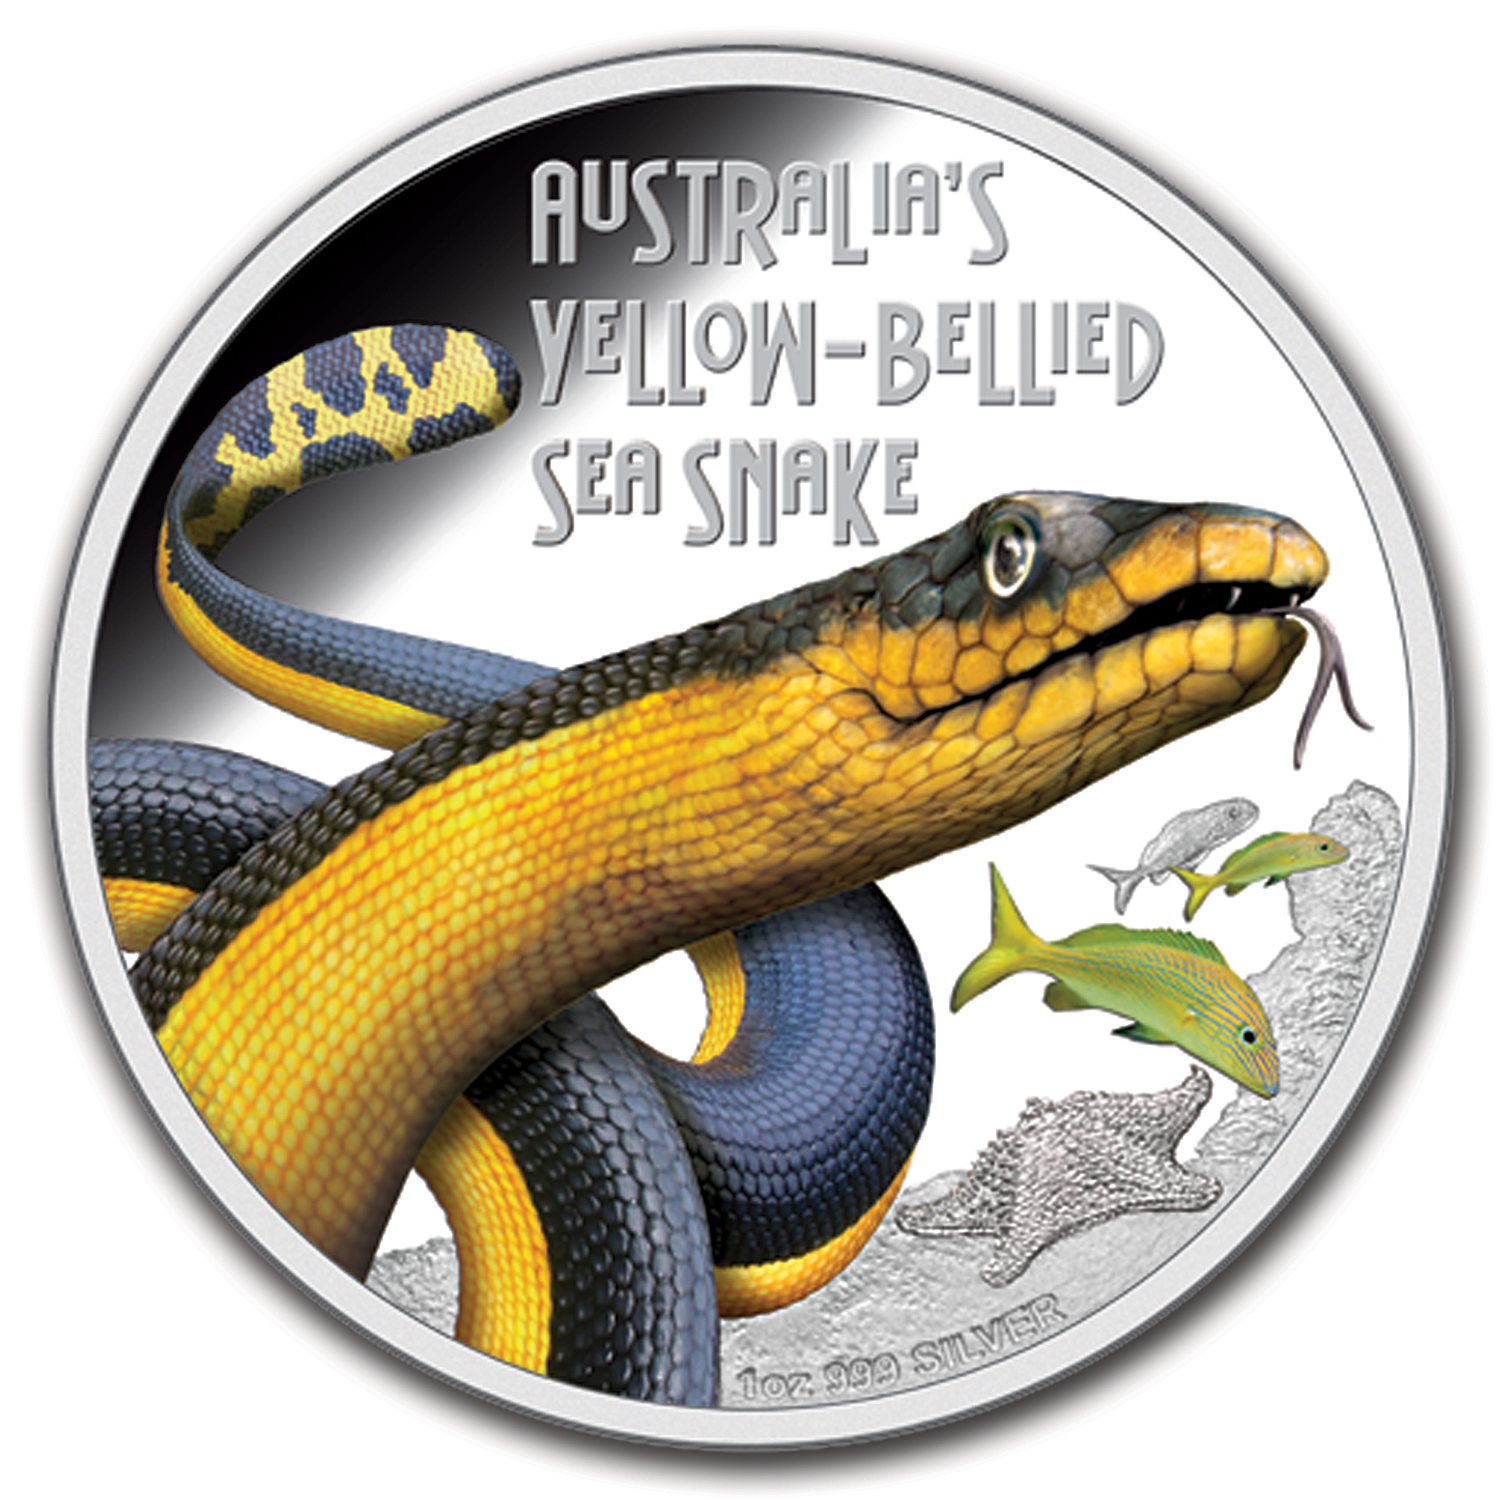 2013 Tuvalu 1 oz Silver Yellow-Bellied Snake Proof